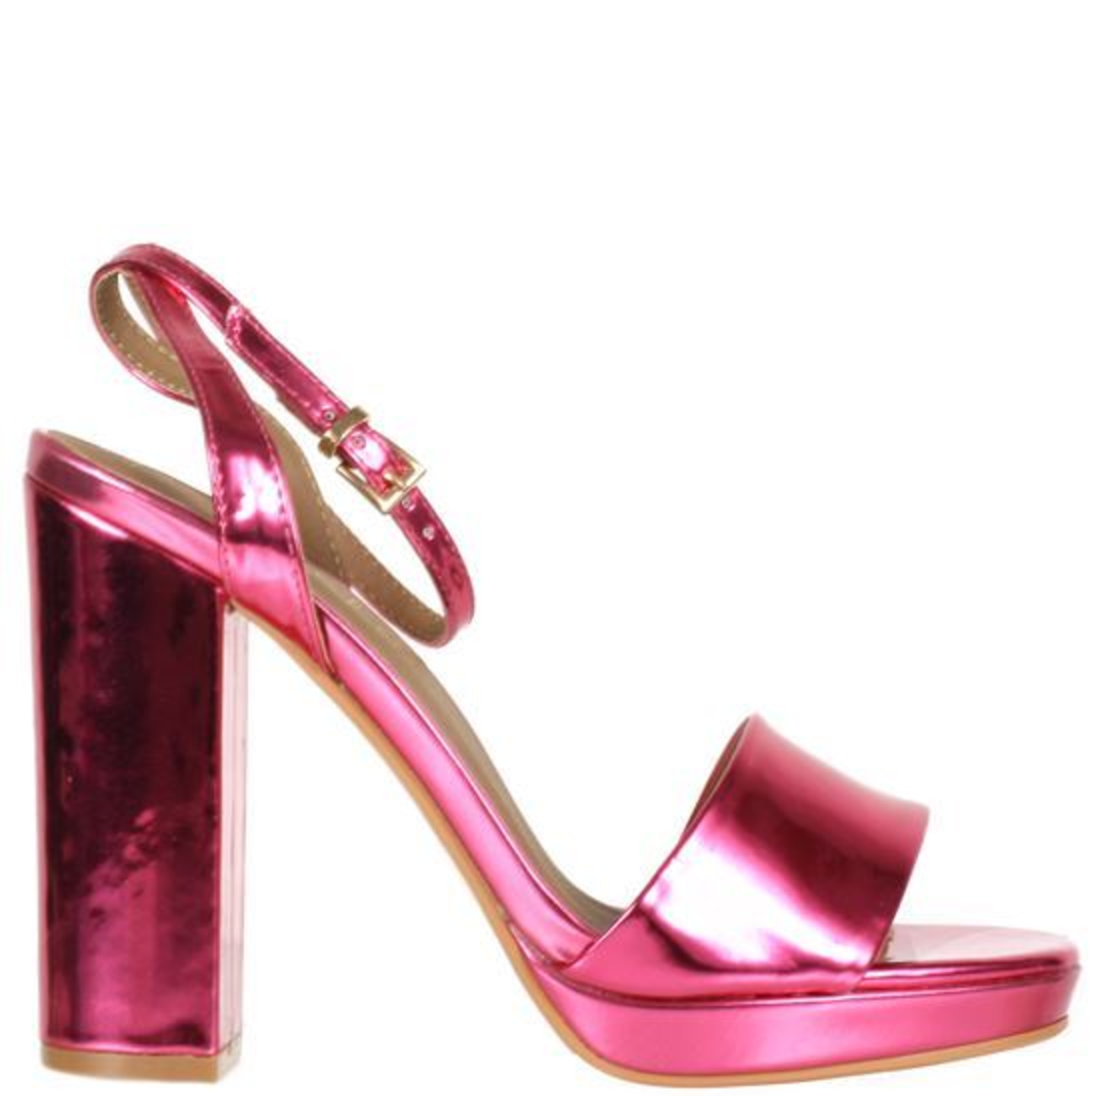 067bd187b8a hot pink like paris hilton 2003  korkys  korkysshoes  shoes  pinkheels  SLAY